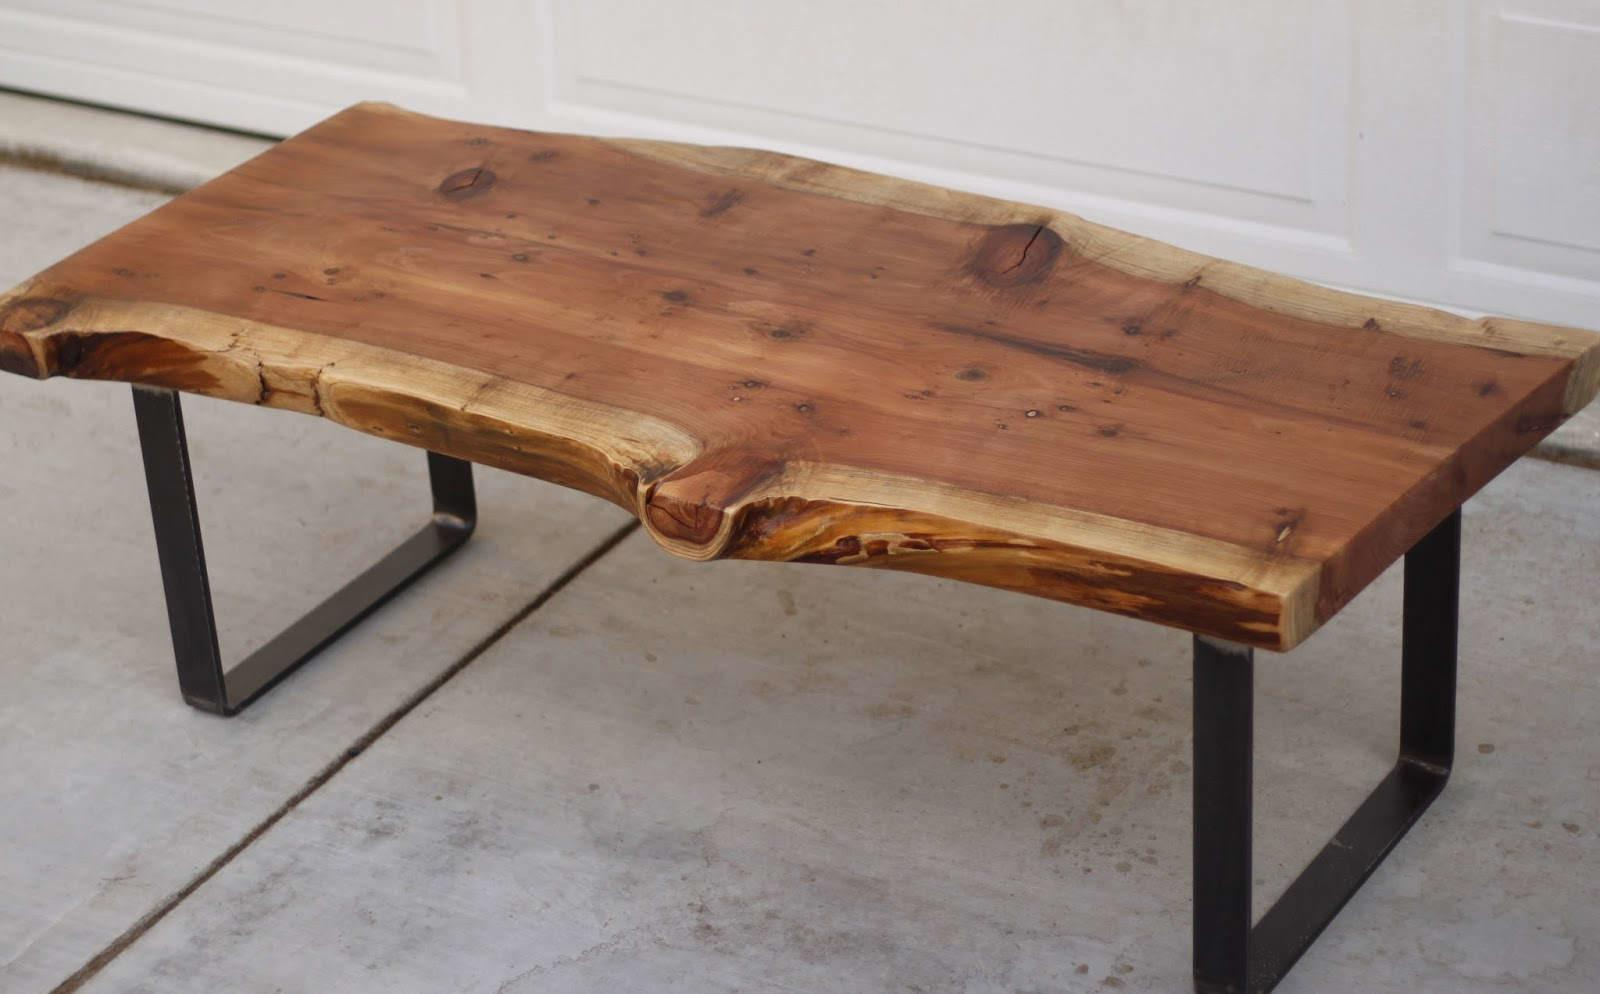 Wonderful Textured Brown Reclaimed Wood Coffee Table Decor